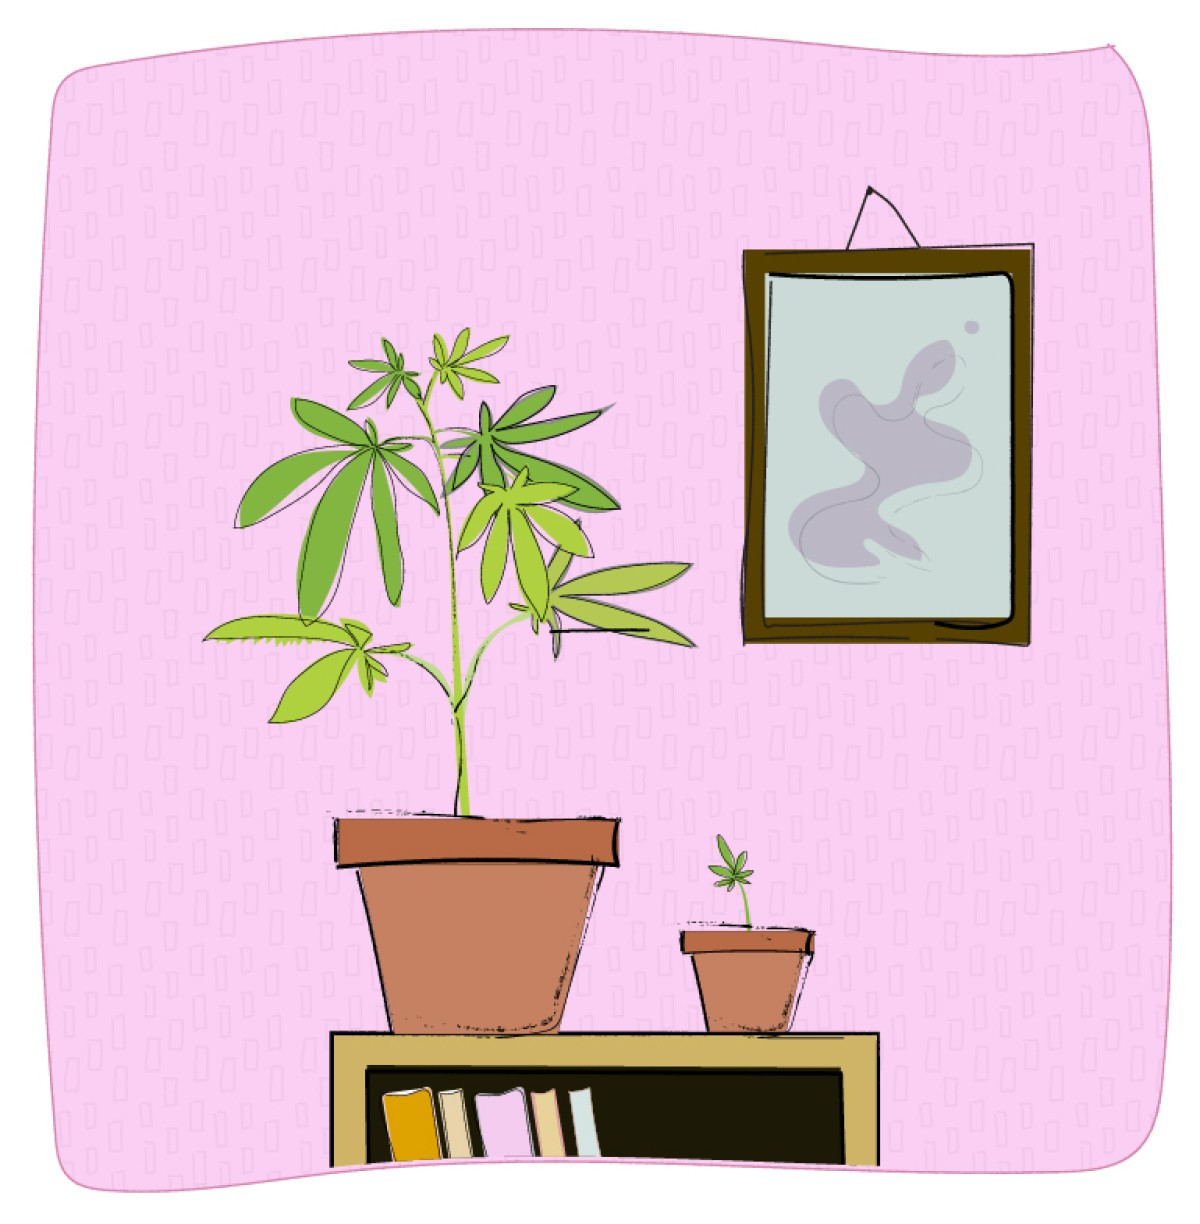 A marijuana plant in a nicely decorated home